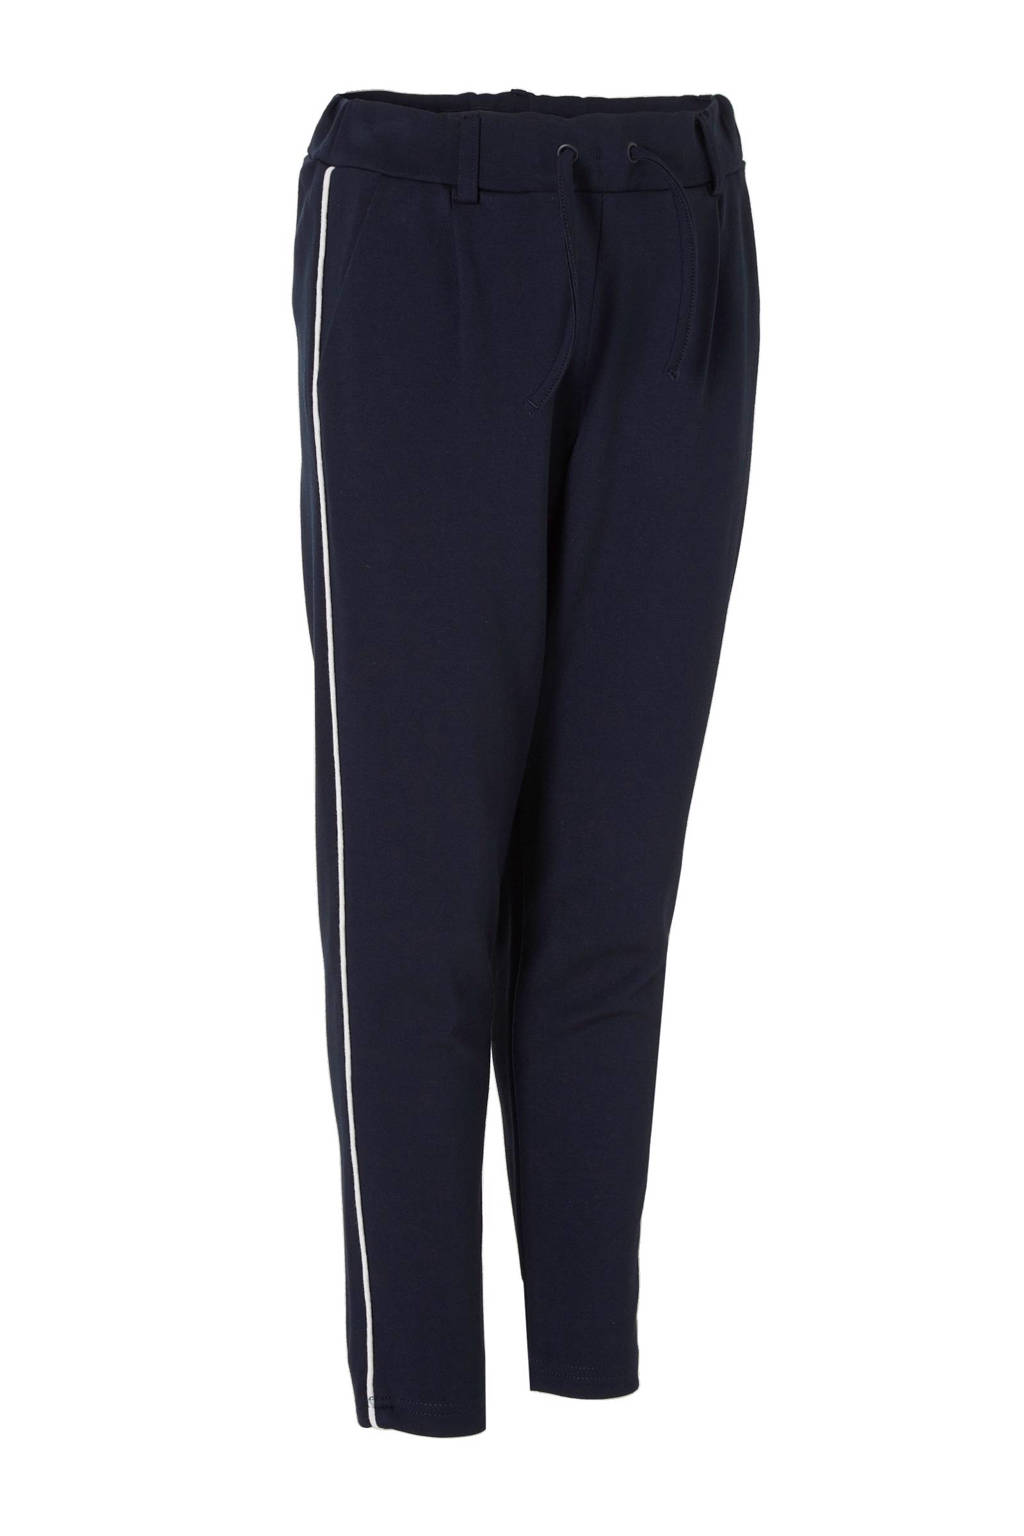 name it KIDS sweatpants Dalic met zijstreep marine, Marine